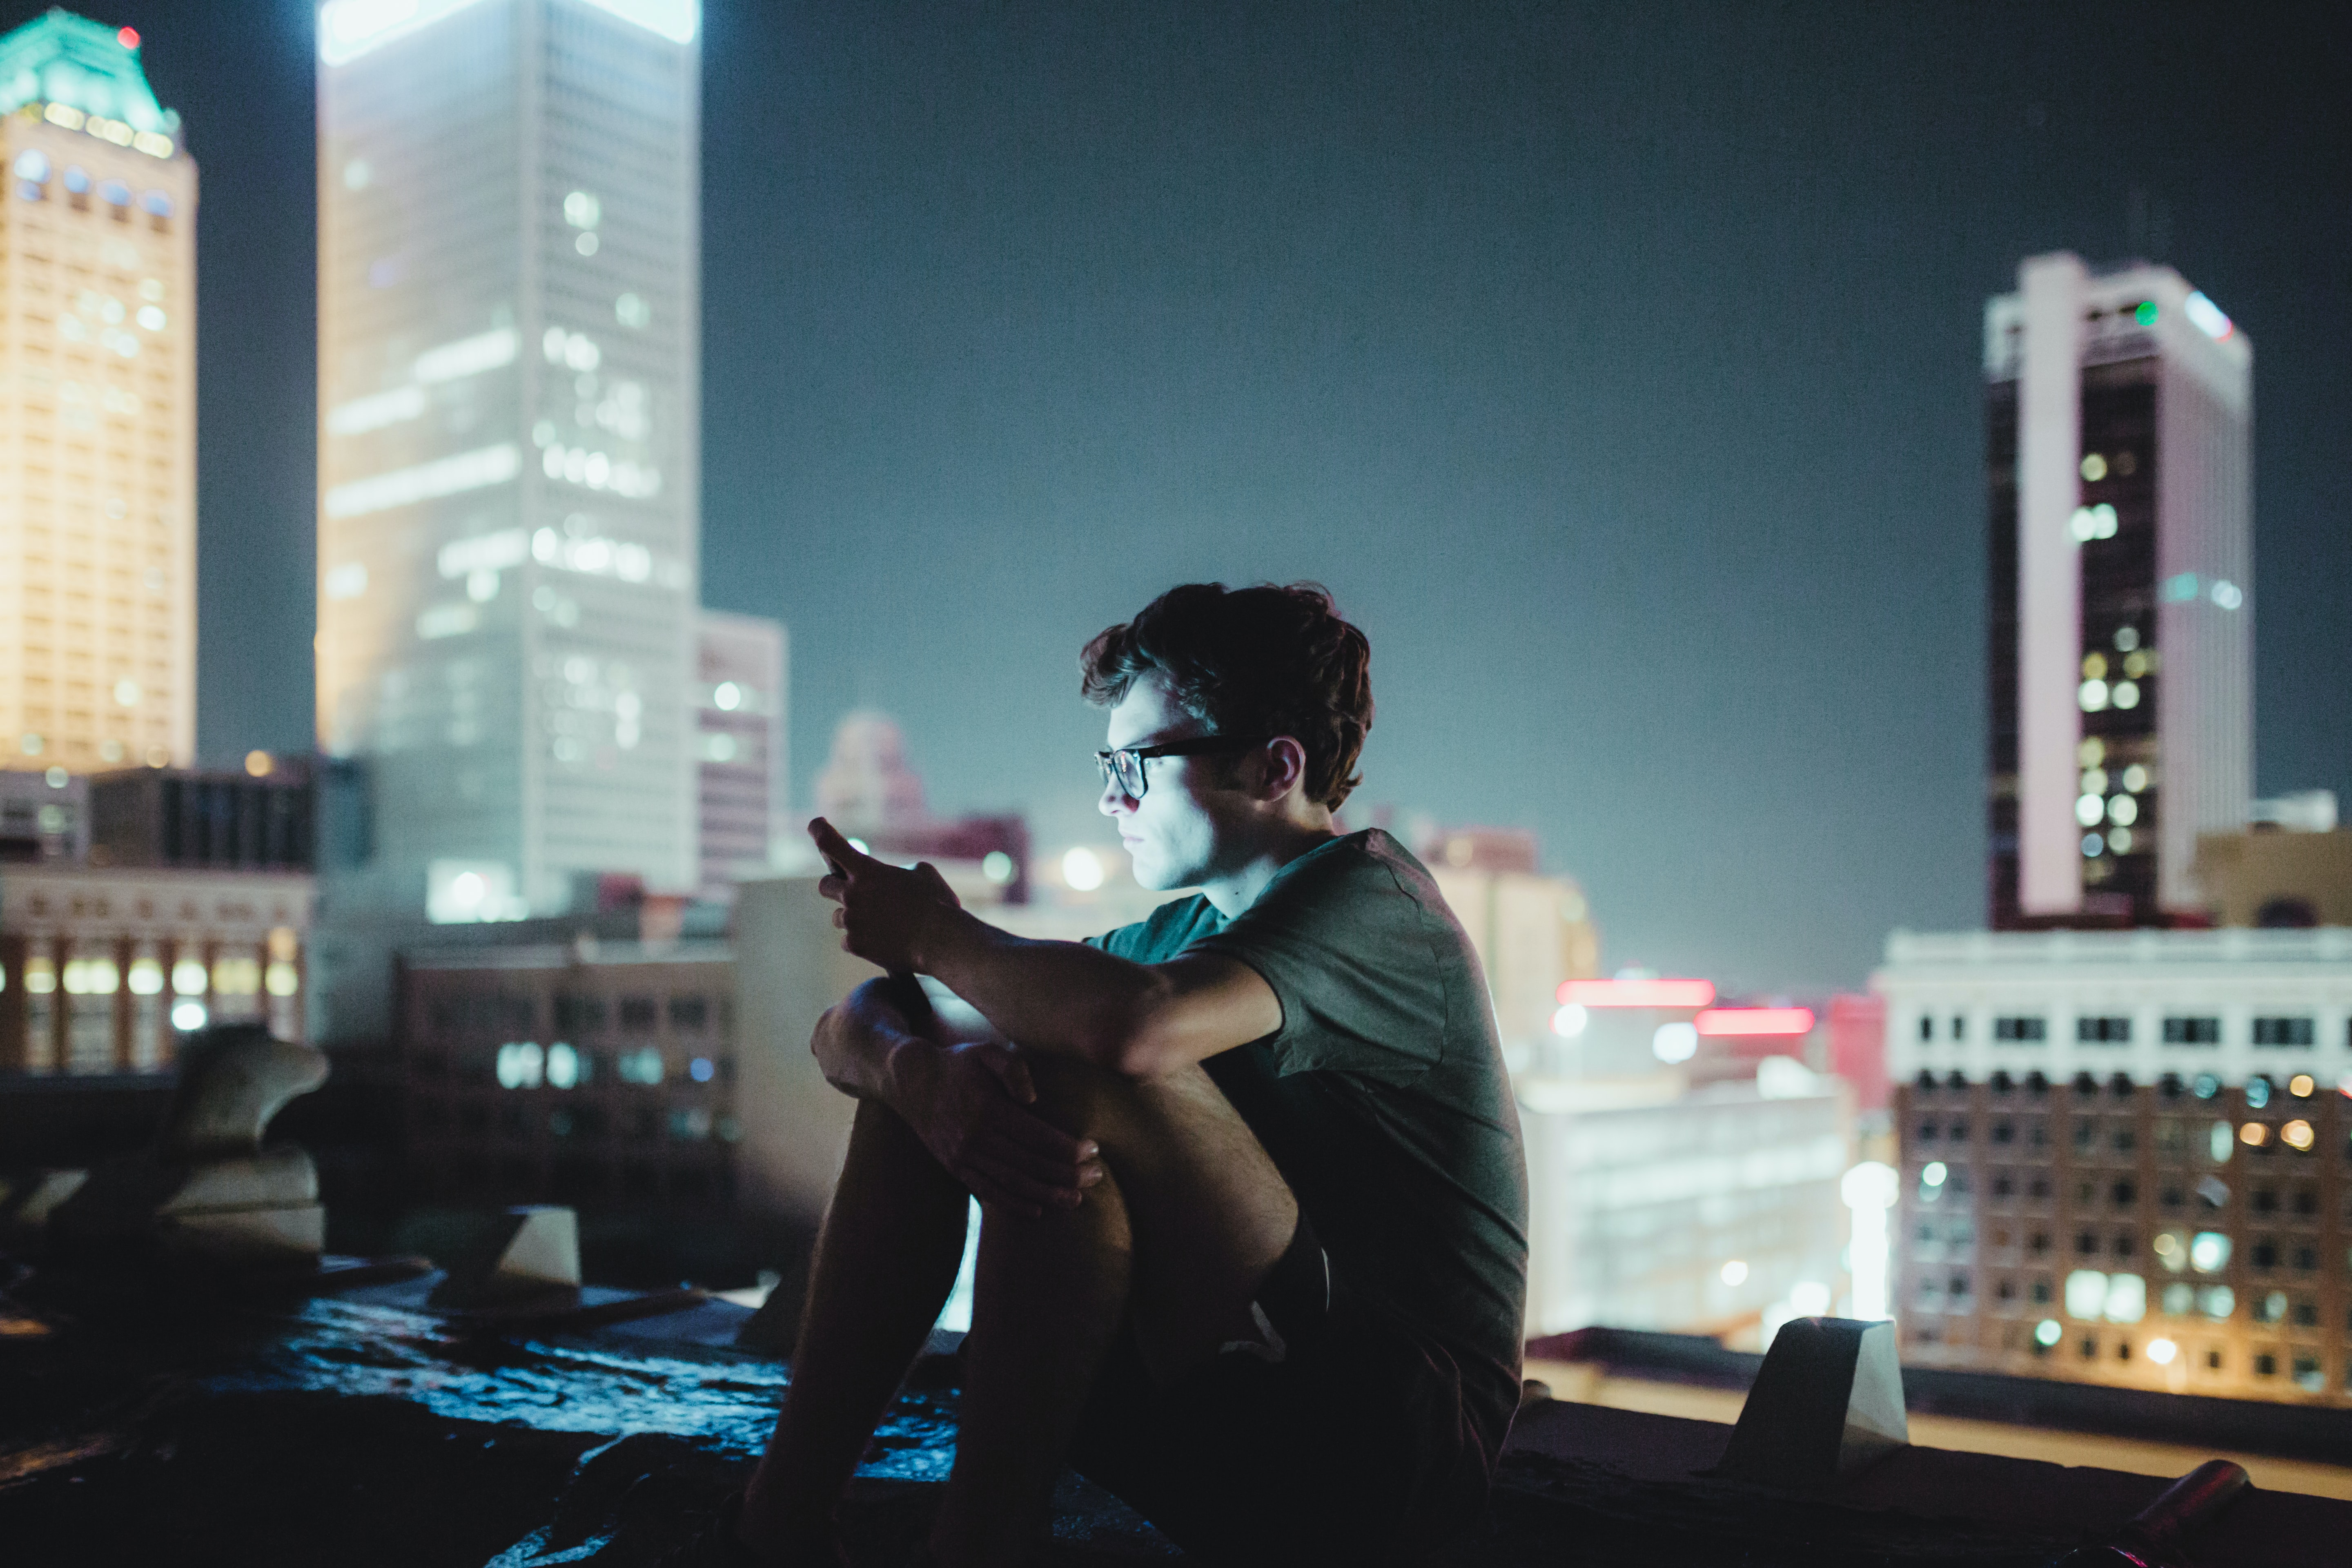 Man sitting alone on a city rooftop staring at his smartphone